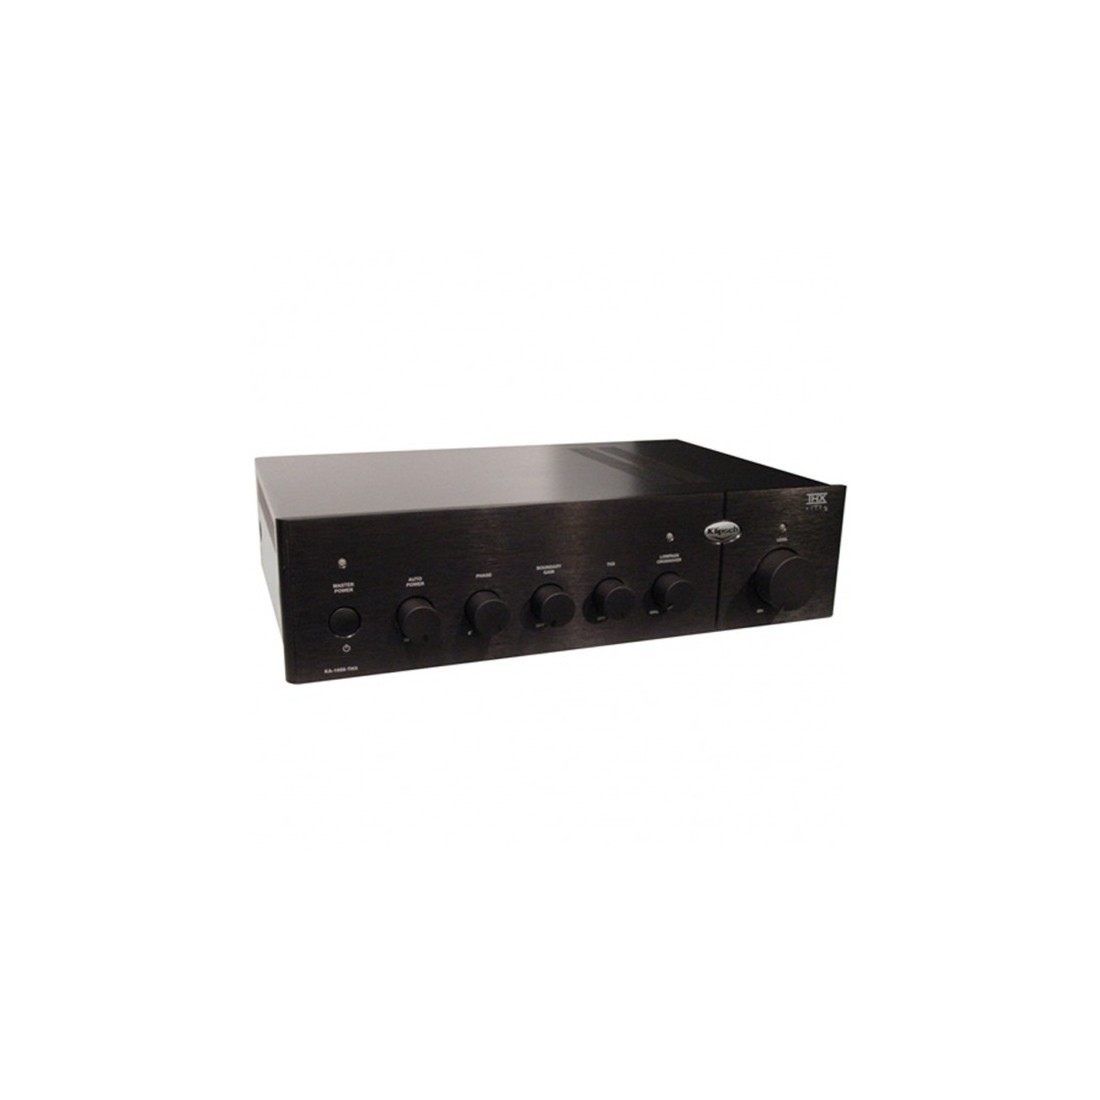 klipsch ka 1000 thx amp subwoofer ultra 2. Black Bedroom Furniture Sets. Home Design Ideas